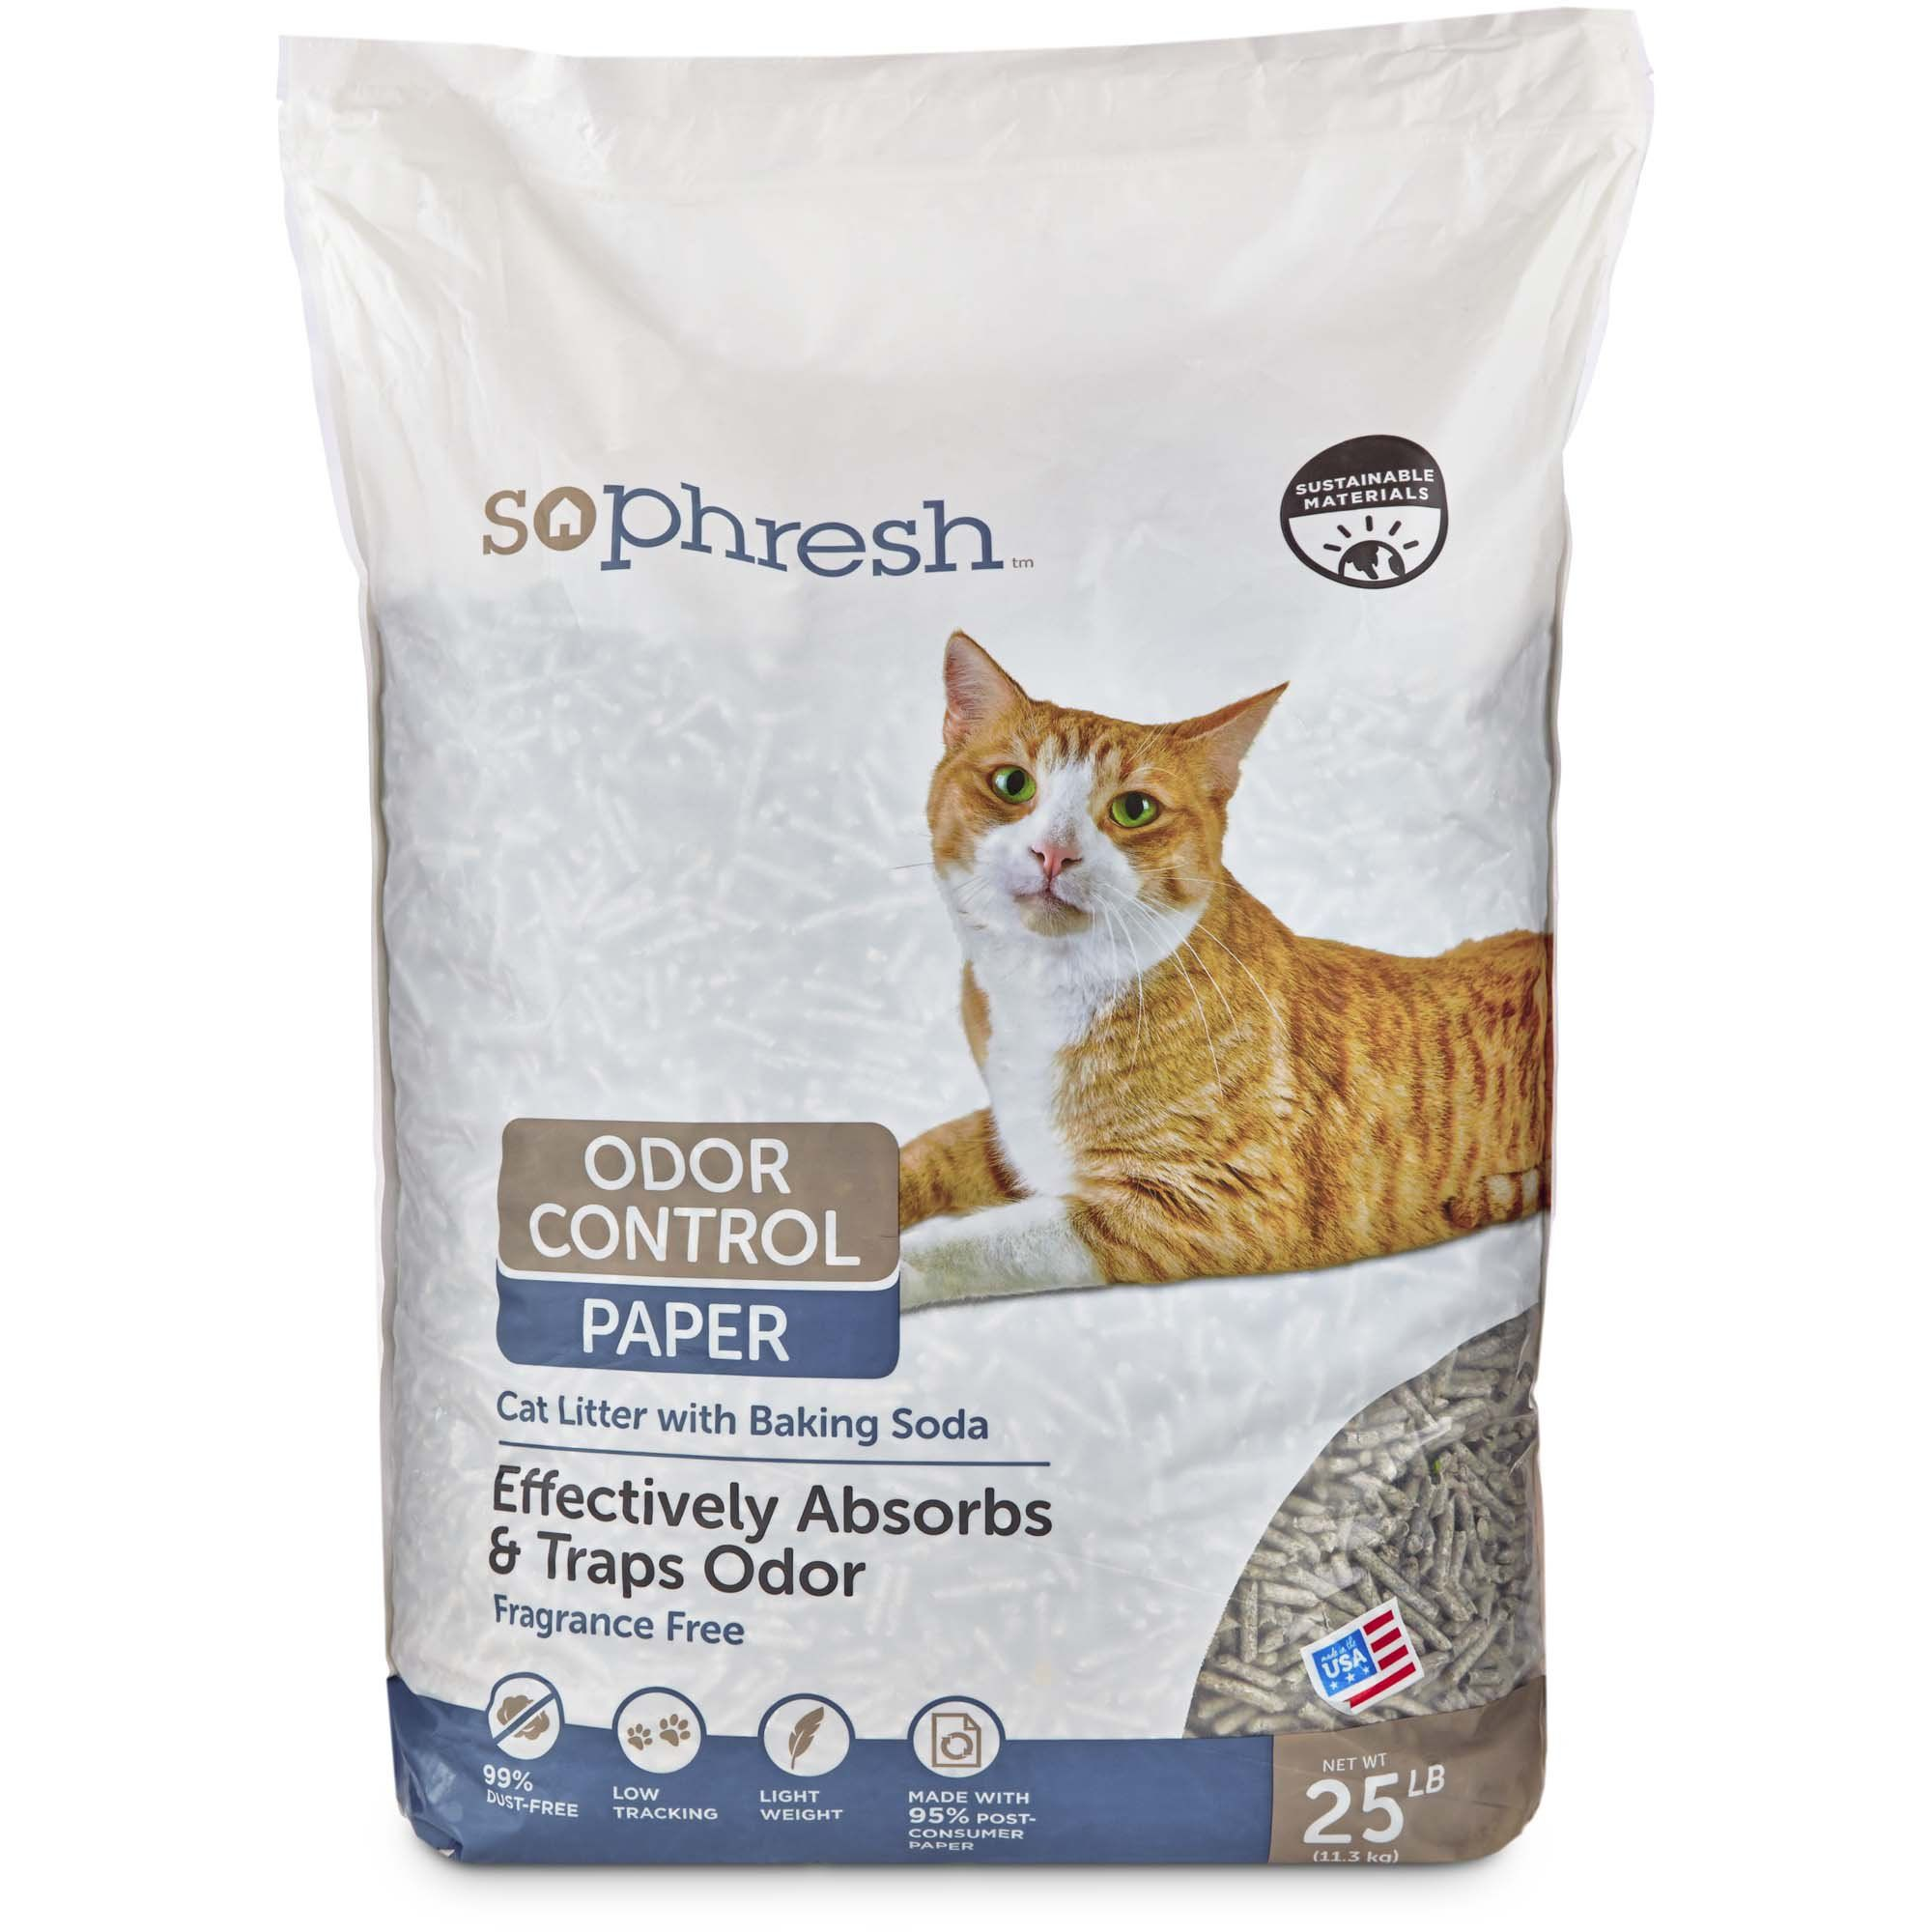 So Phresh Odor Control Paper Cat Litter, 25 lbs Paper